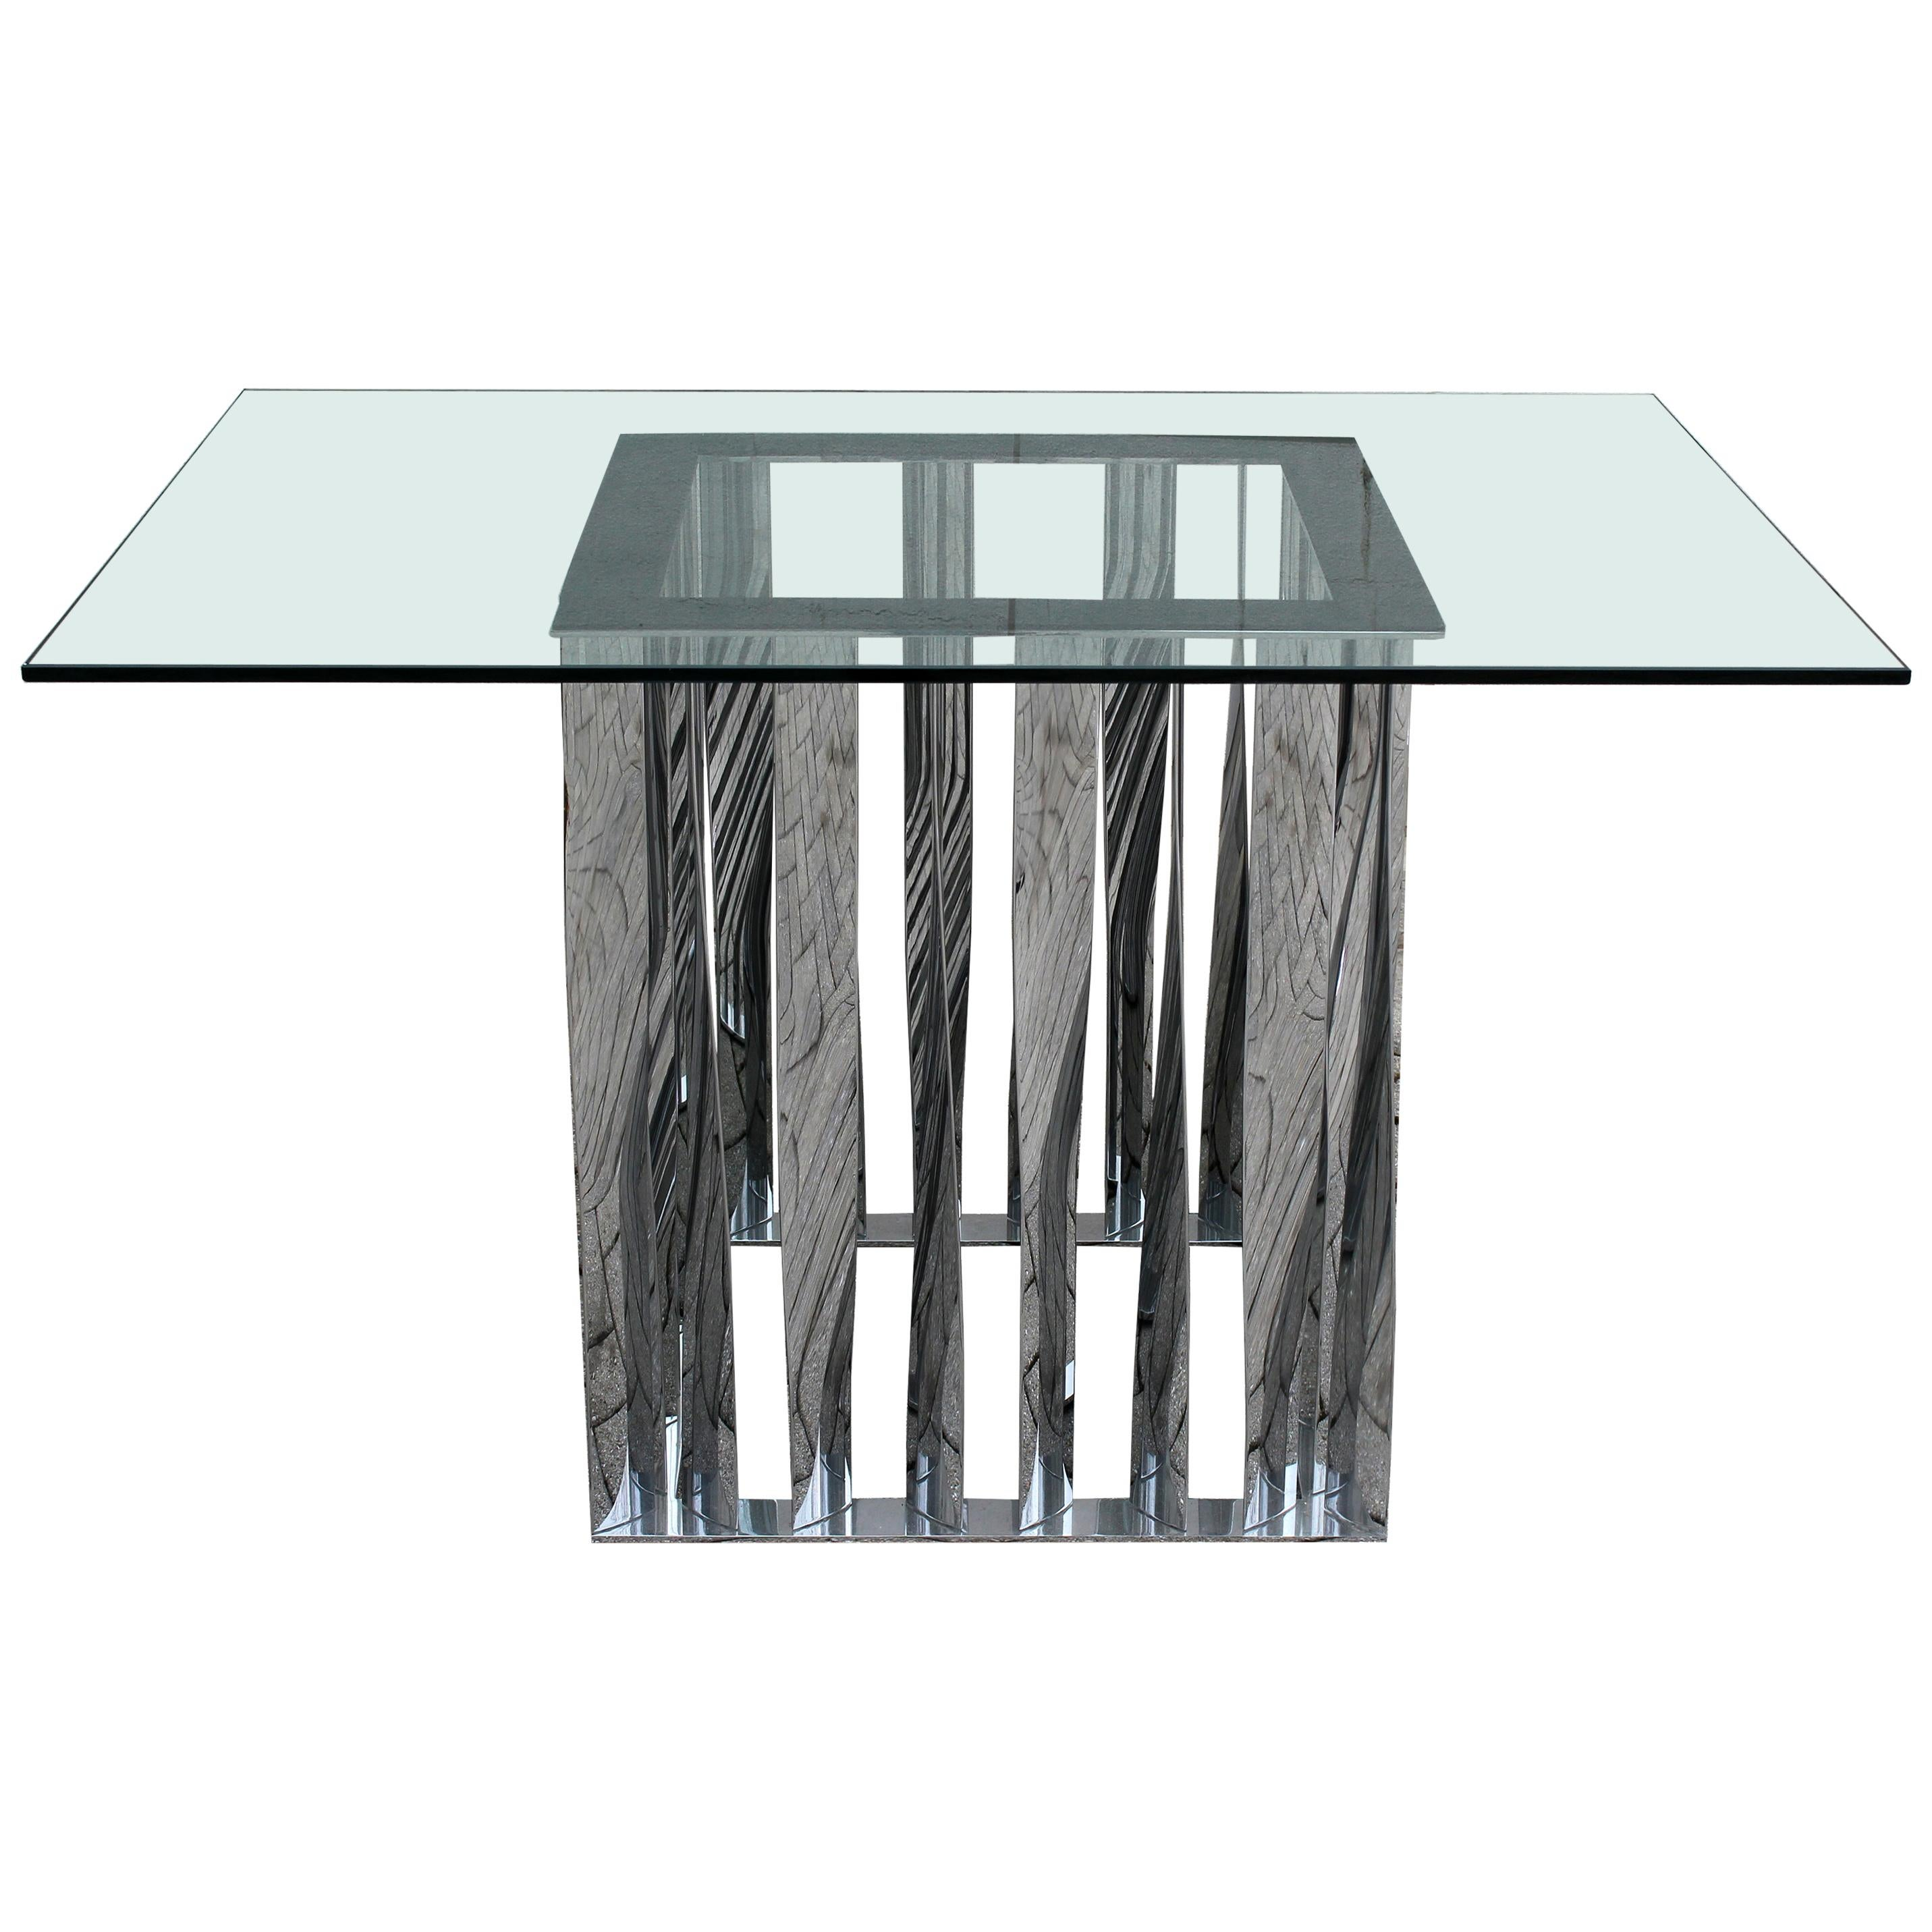 Contemporary Modern Sculptural Chrome Glass Dinette Foyer Table, 1980s